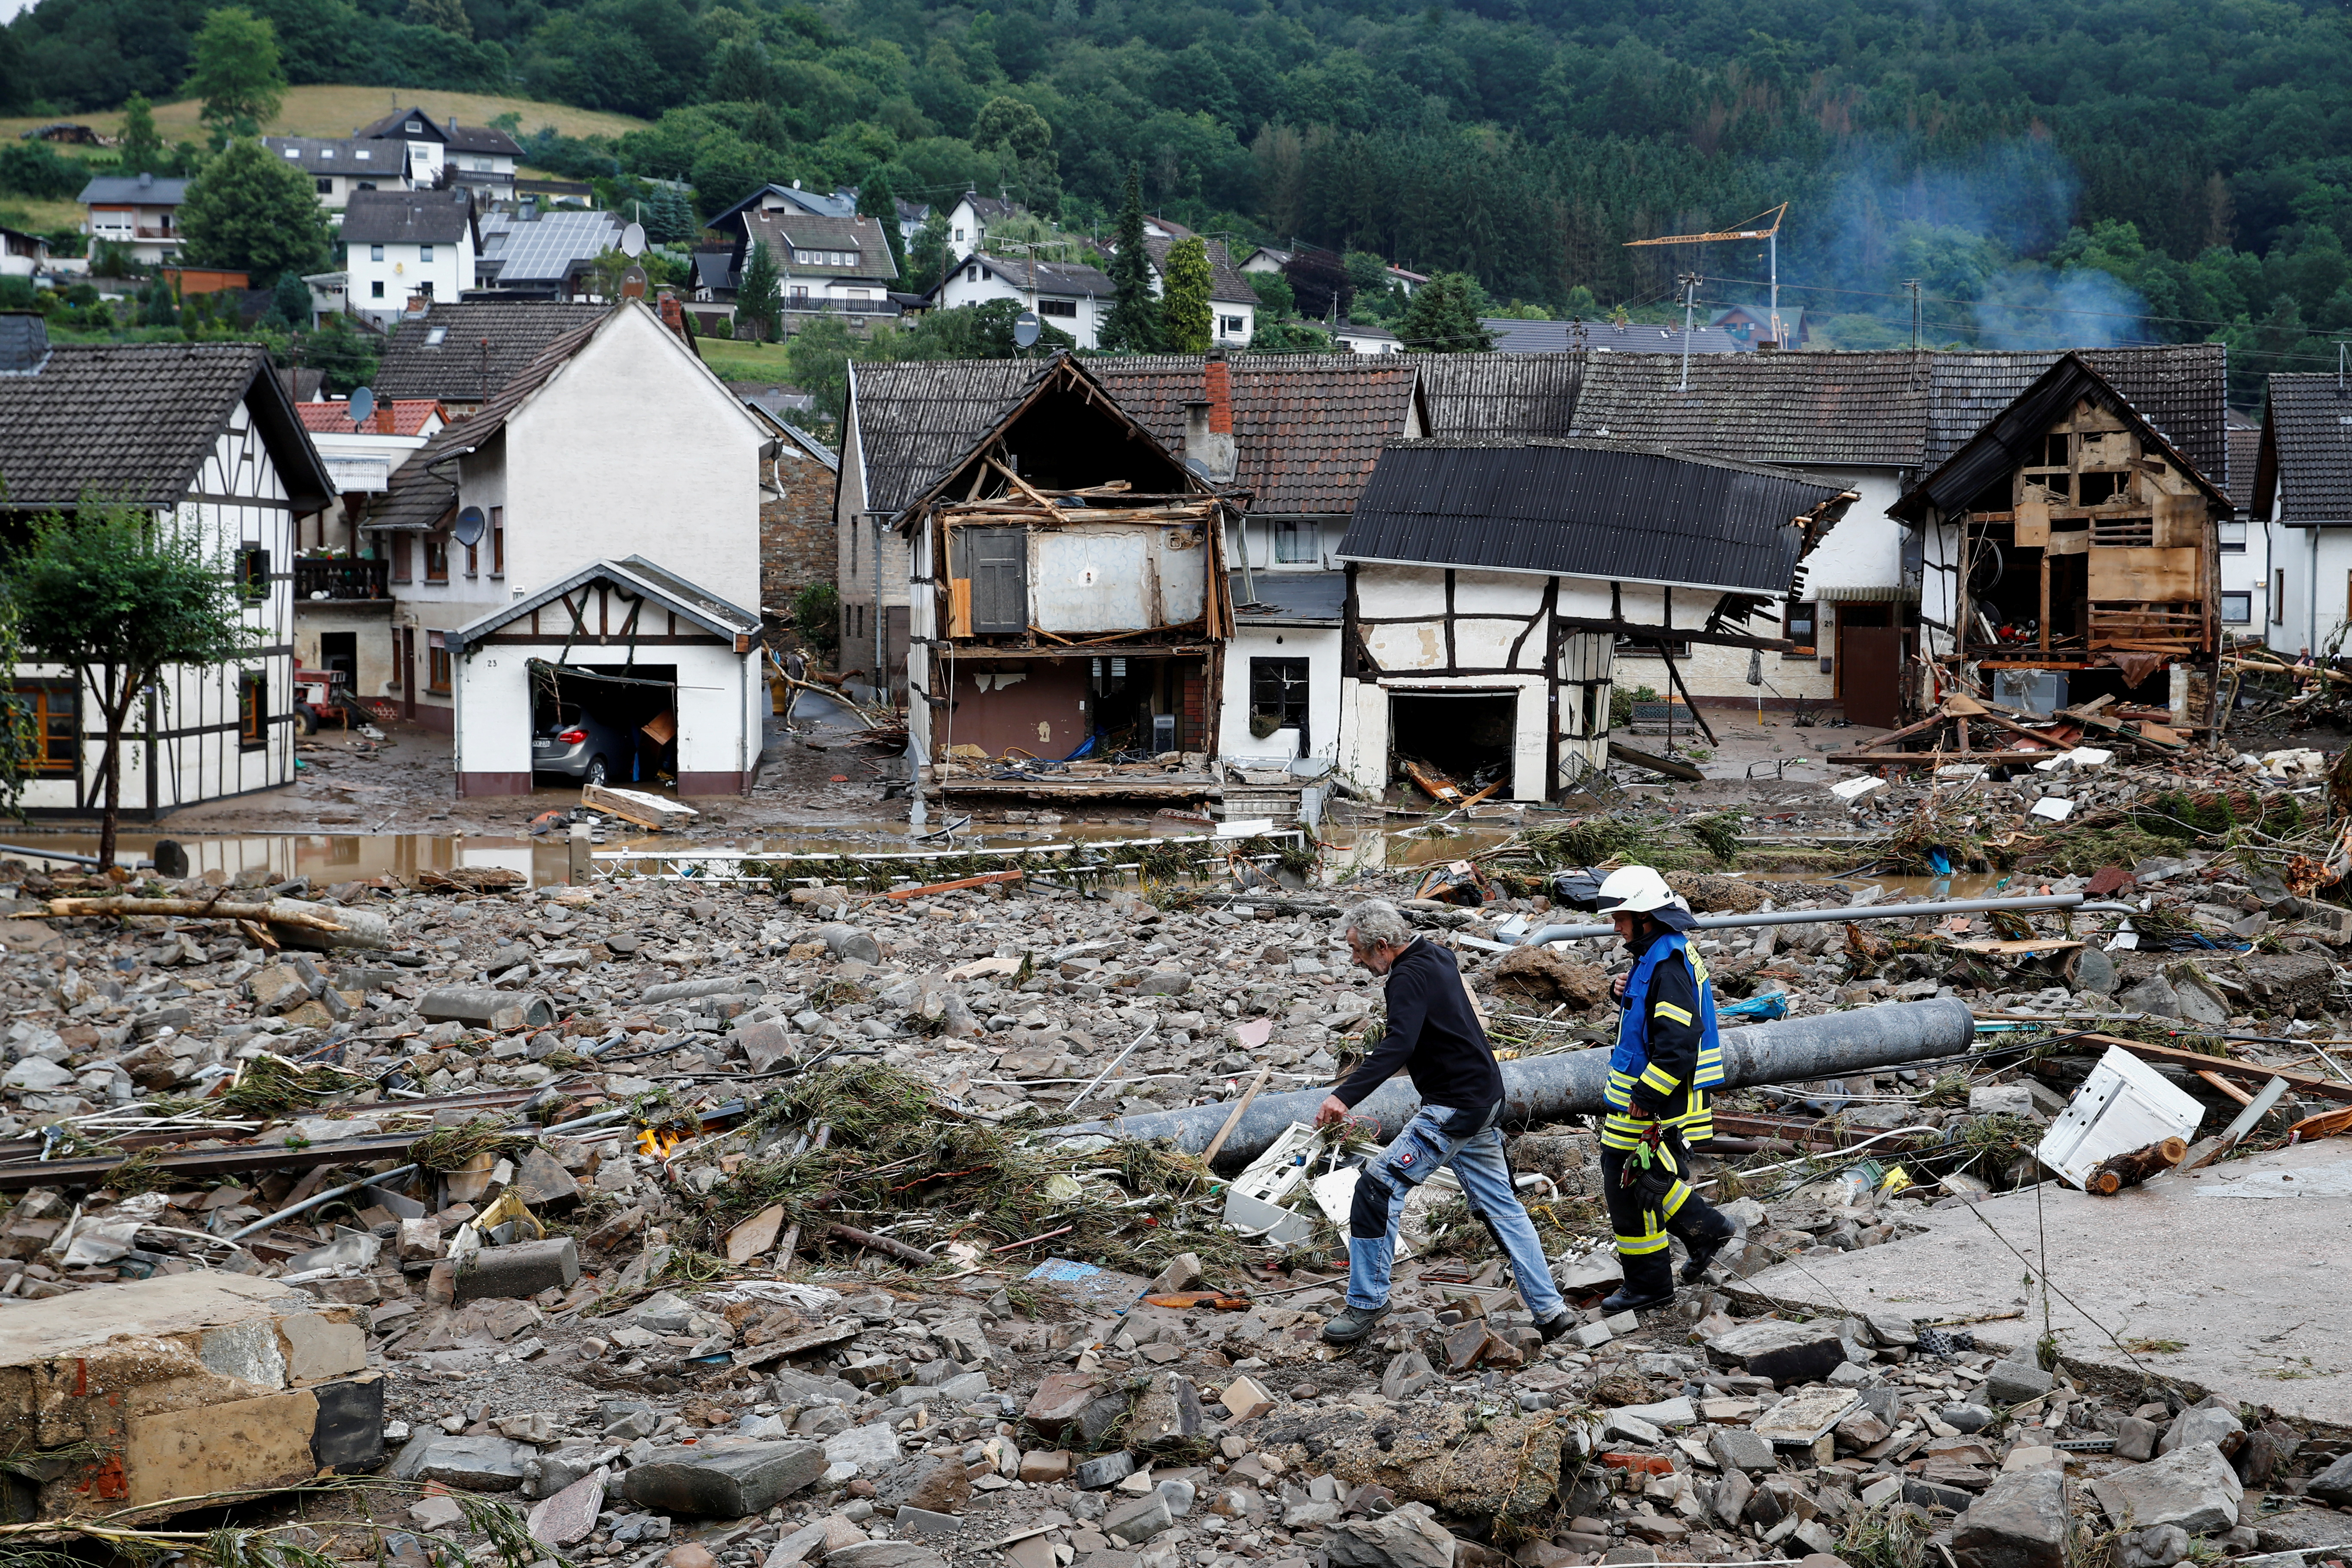 A man and firefighter walk through debris, following heavy rainfalls in Schuld, Germany, July 15, 2021. REUTERS/Wolfgang Rattay